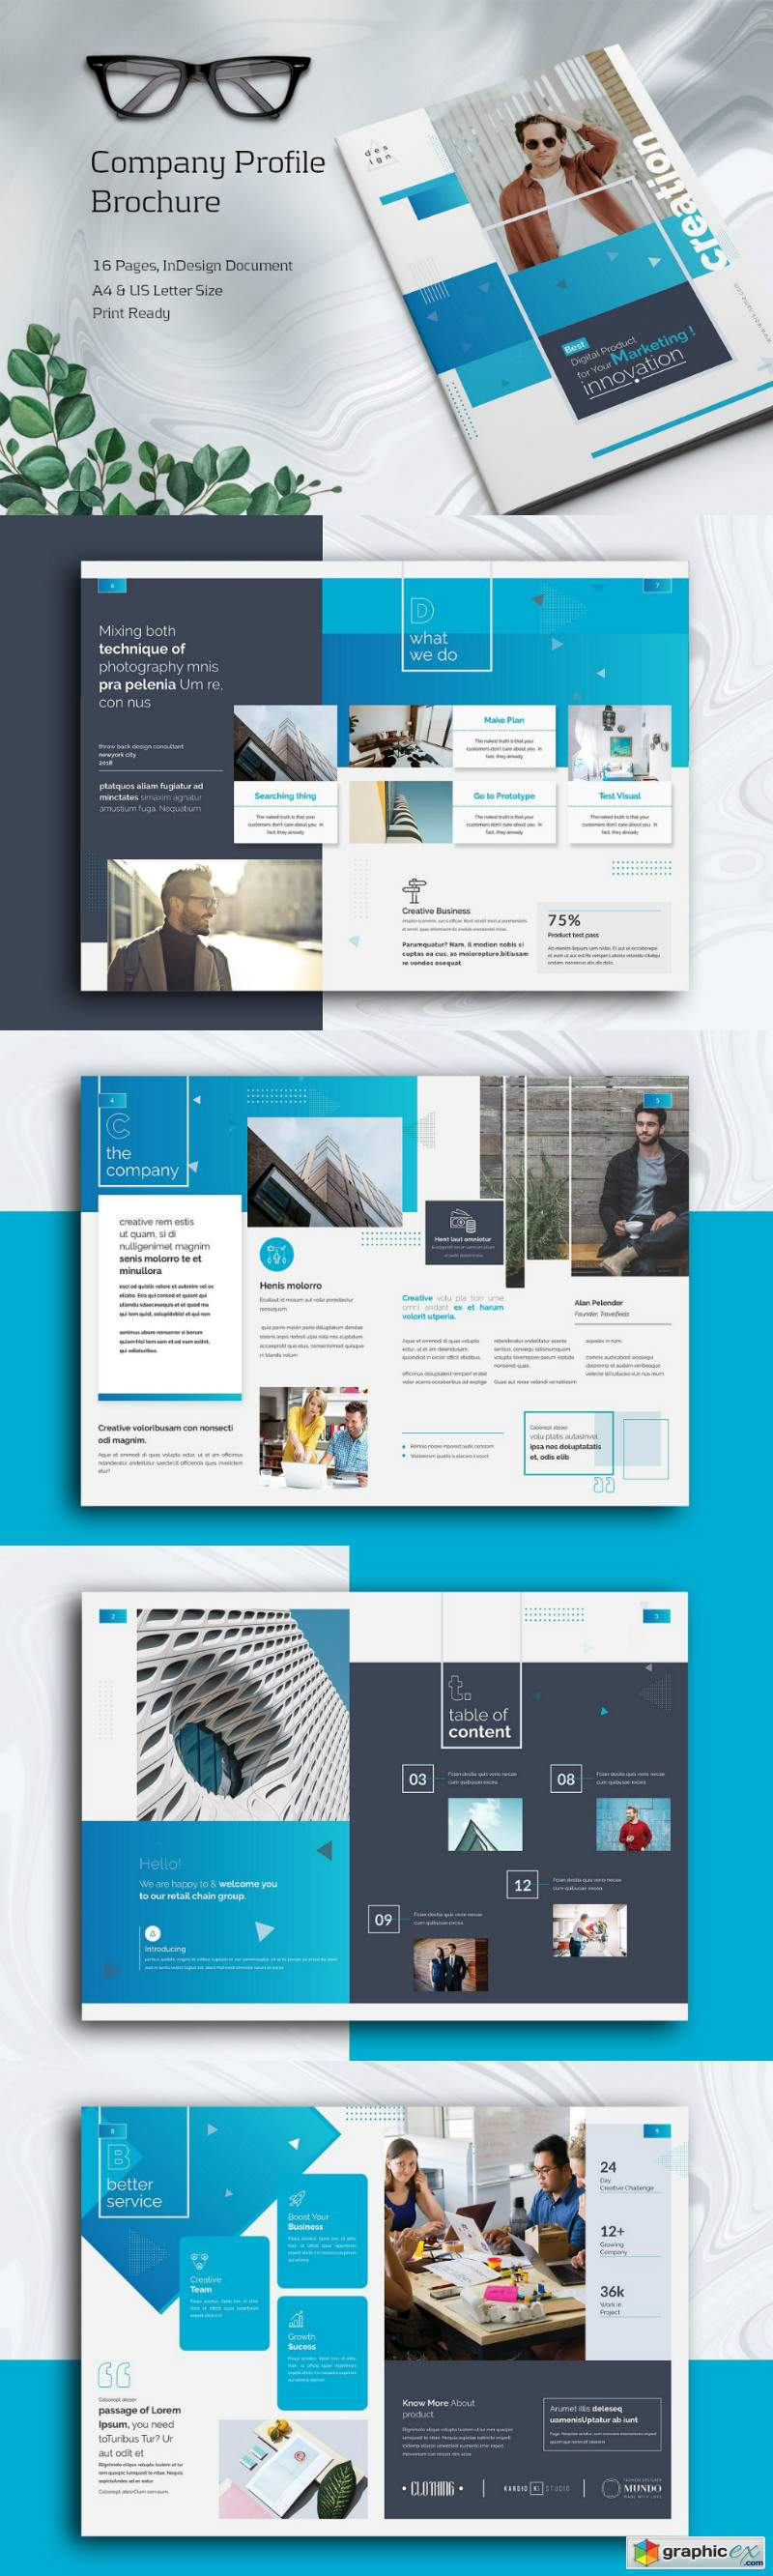 Company Profile Brochure 3907993